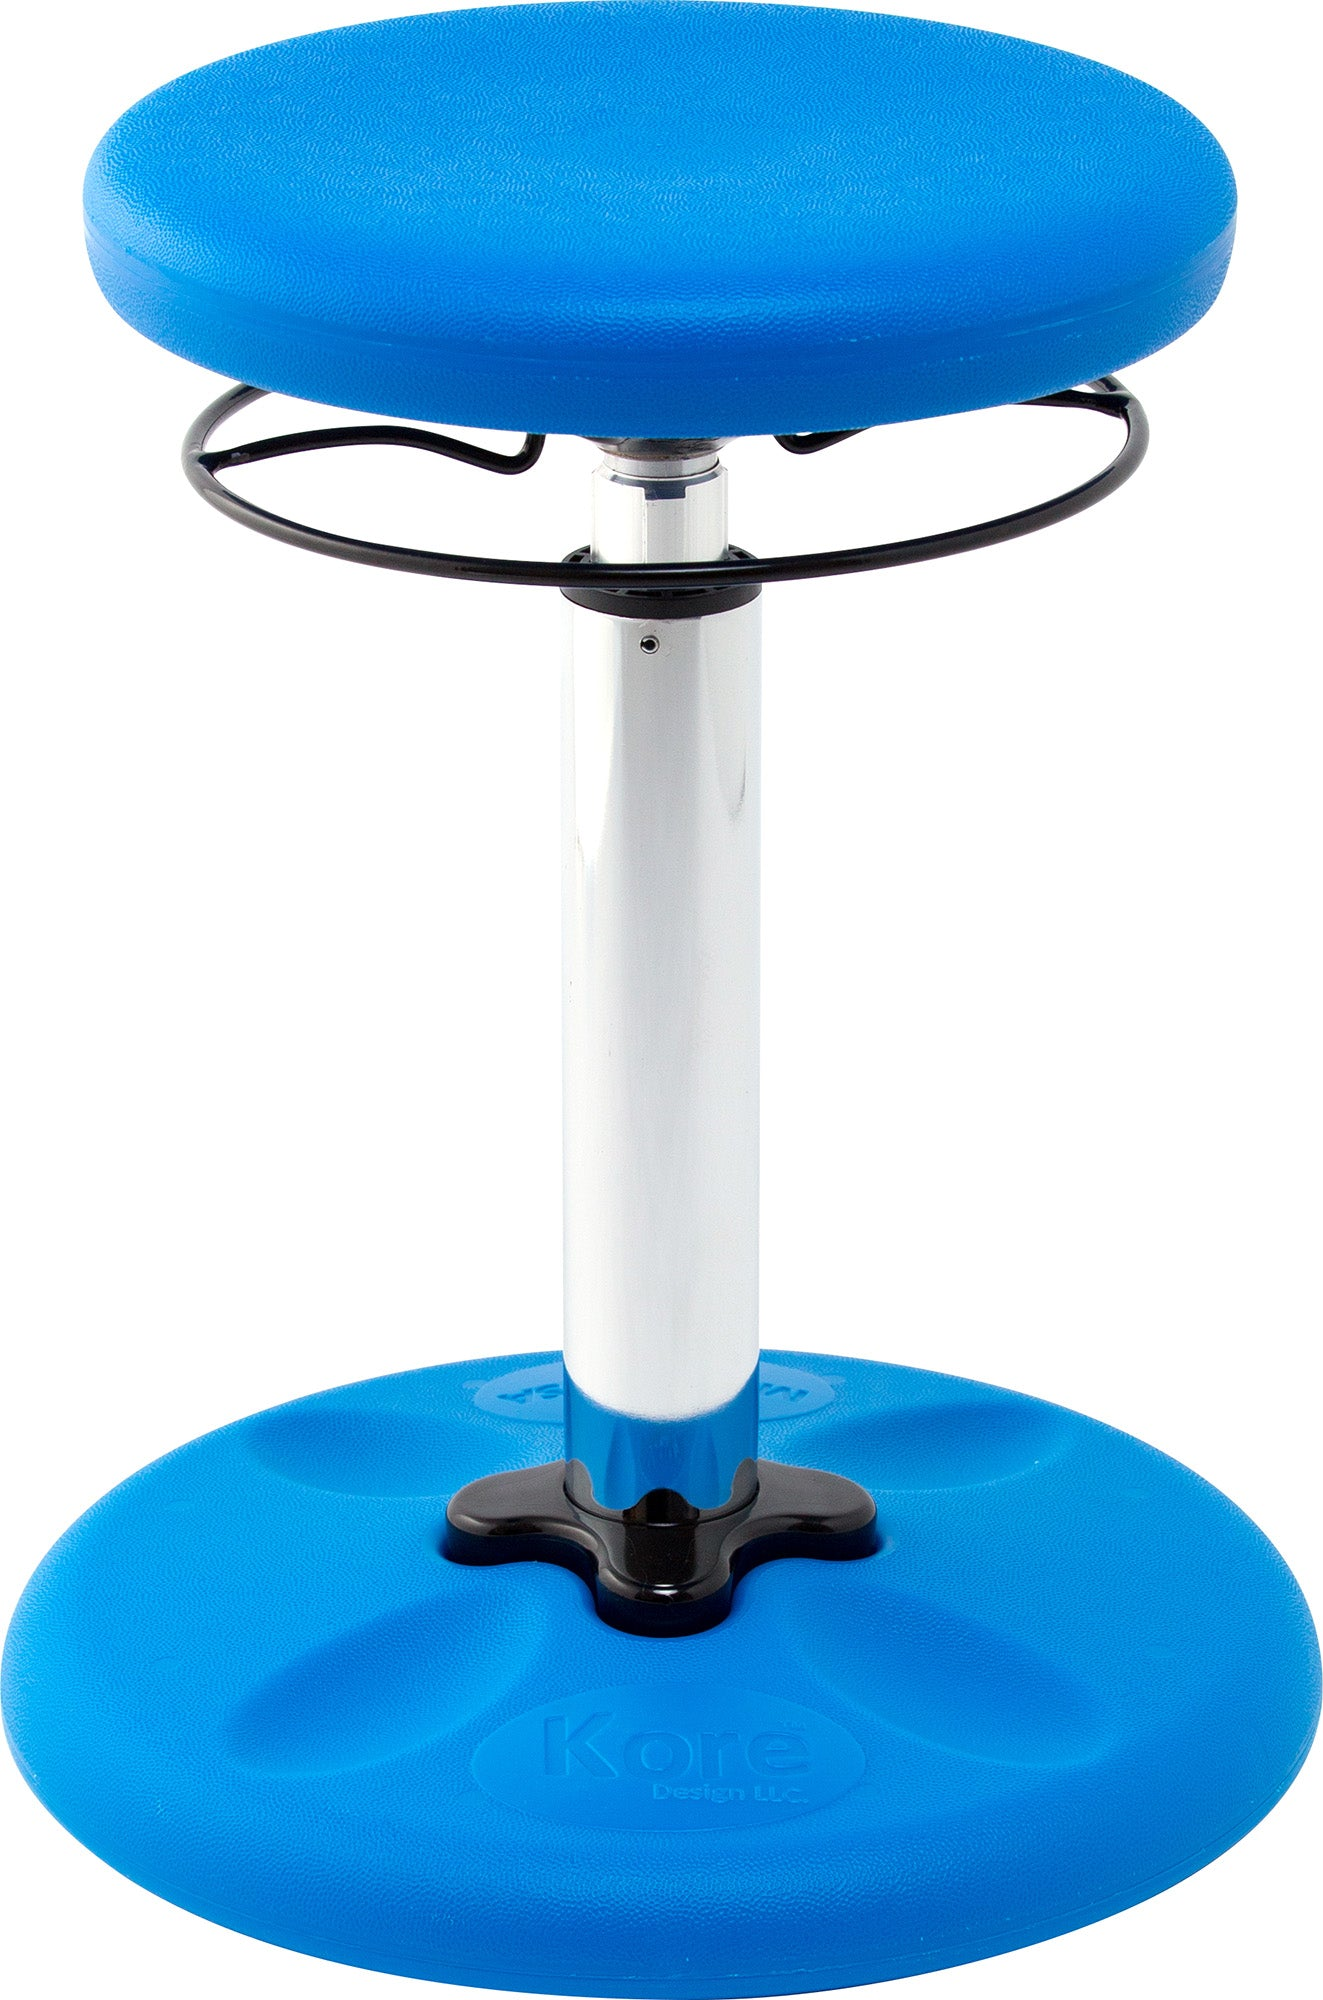 Kore Design - Kids Adjustable Wobble Chair